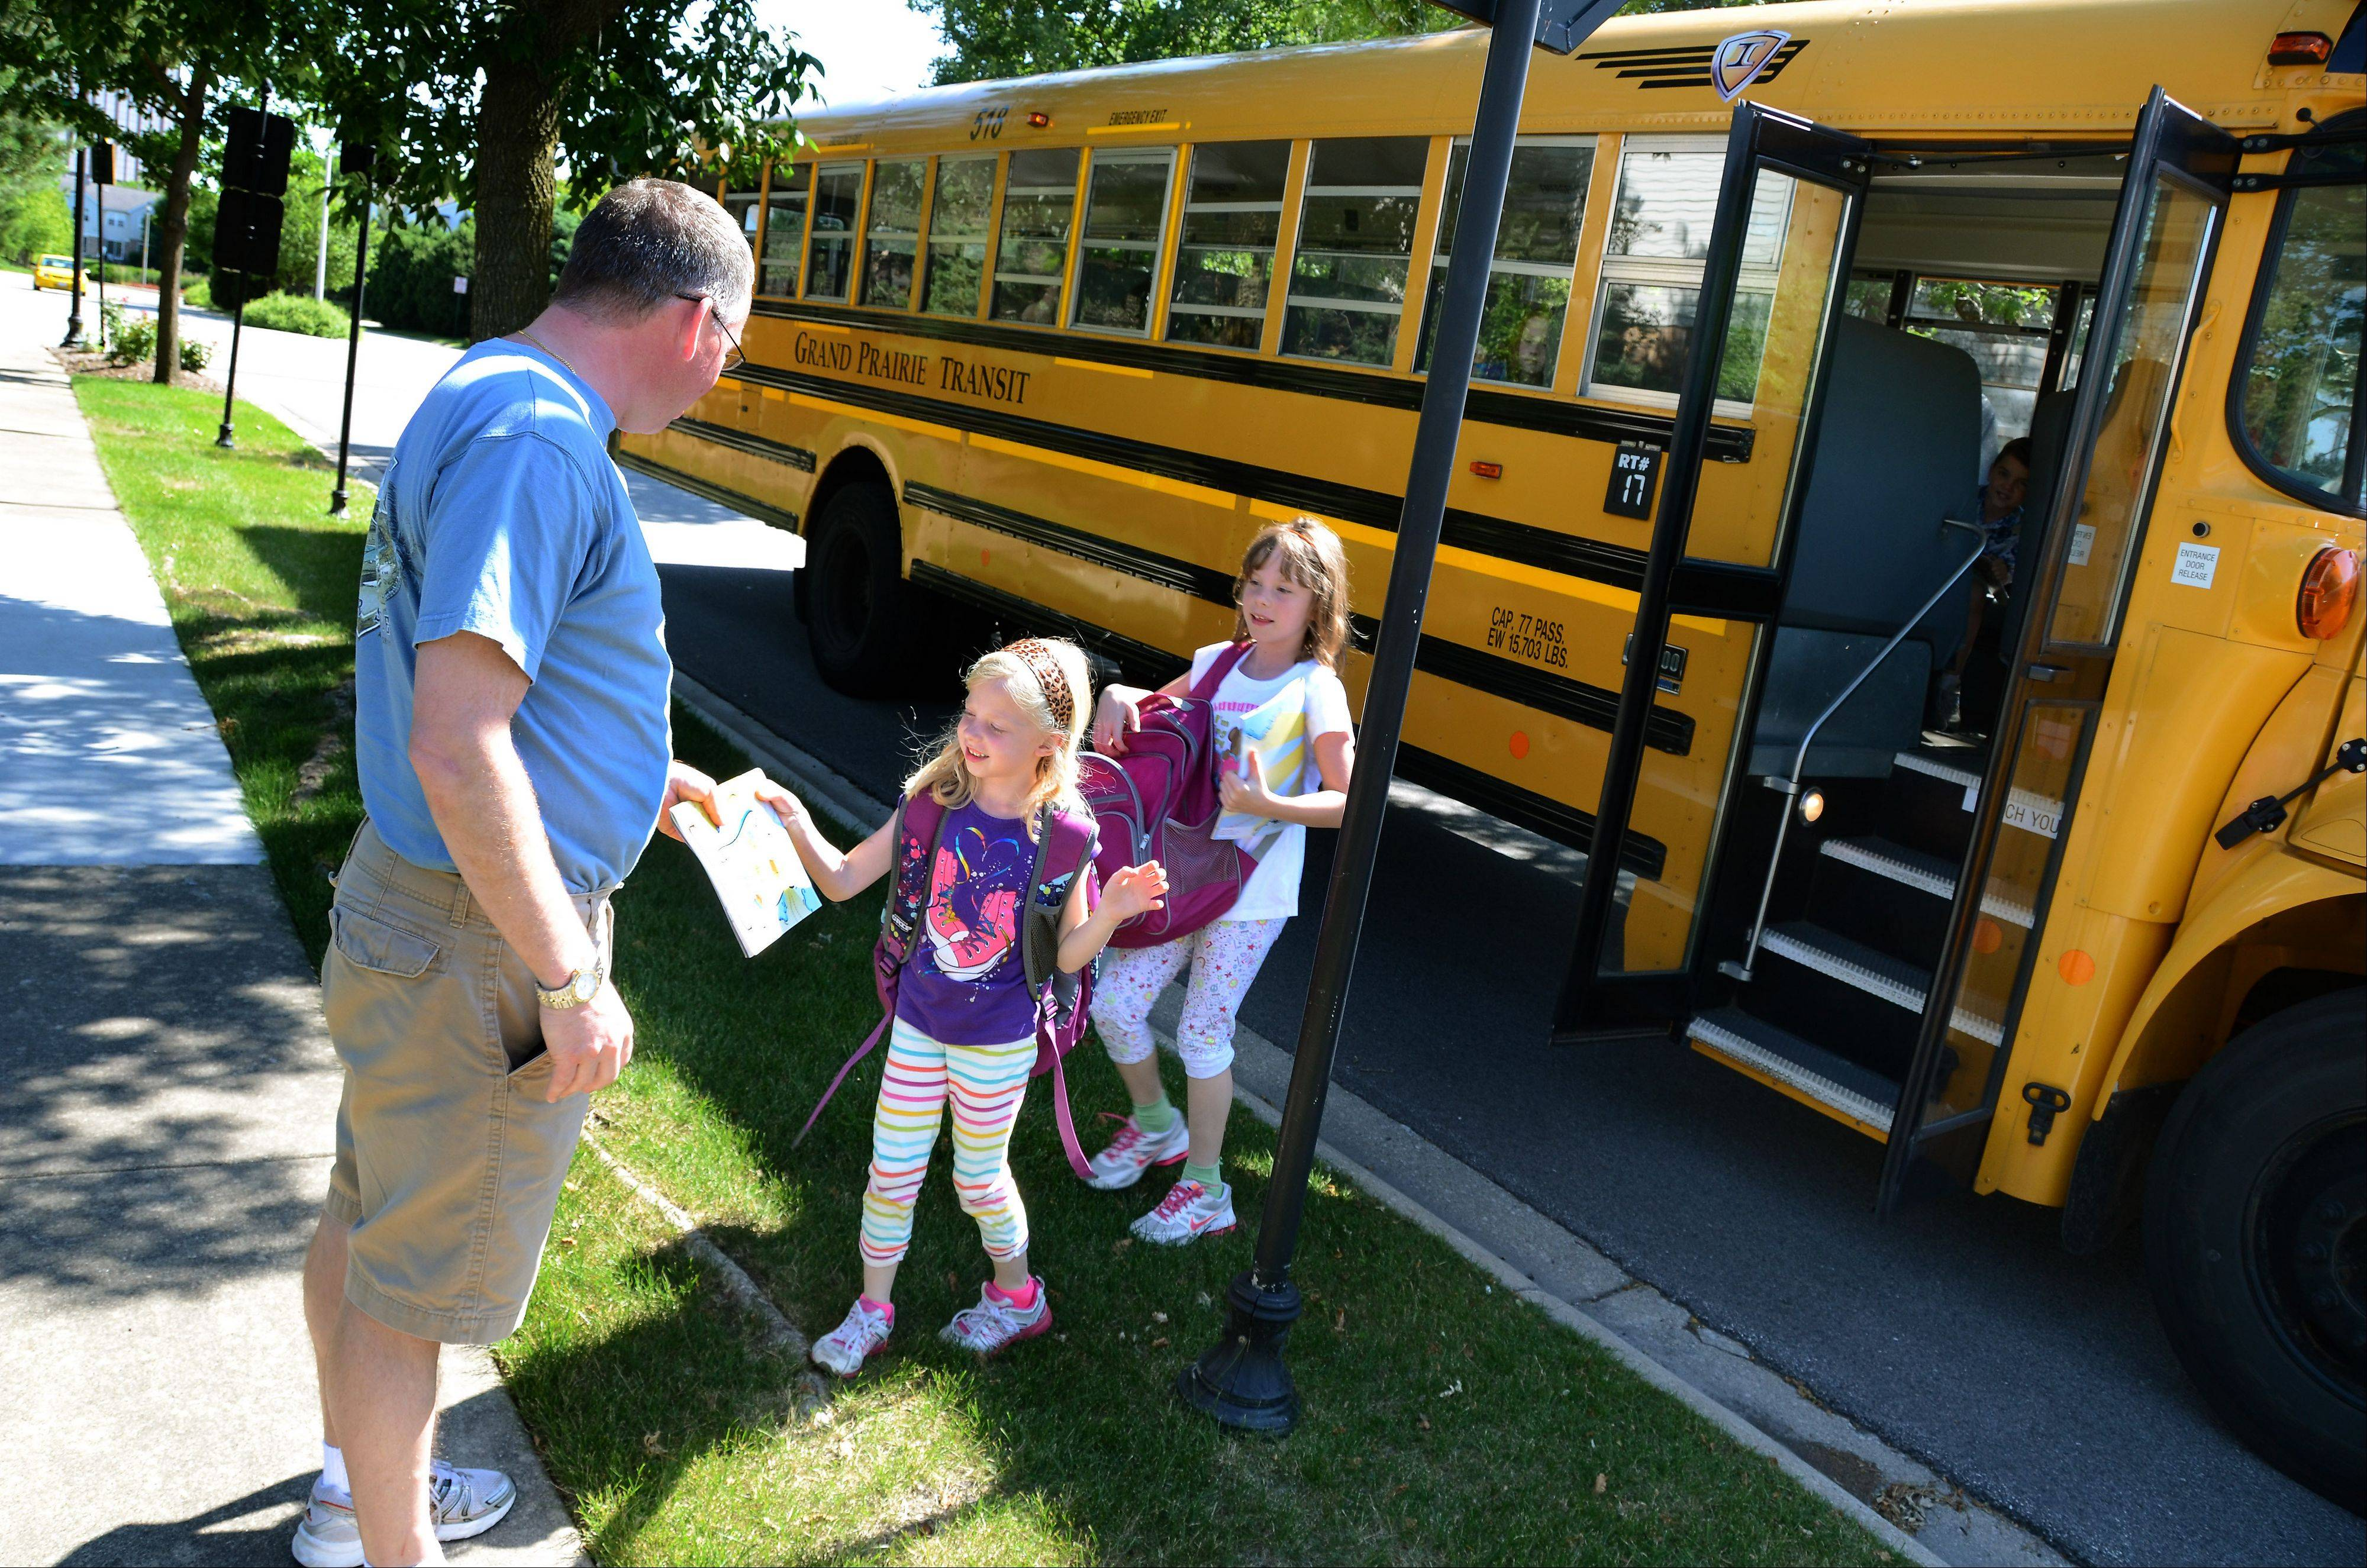 Stay-at-home dad Randy Reid meets his daughters Maddie, 6, left, and Bella, 8, home from the bus stop.